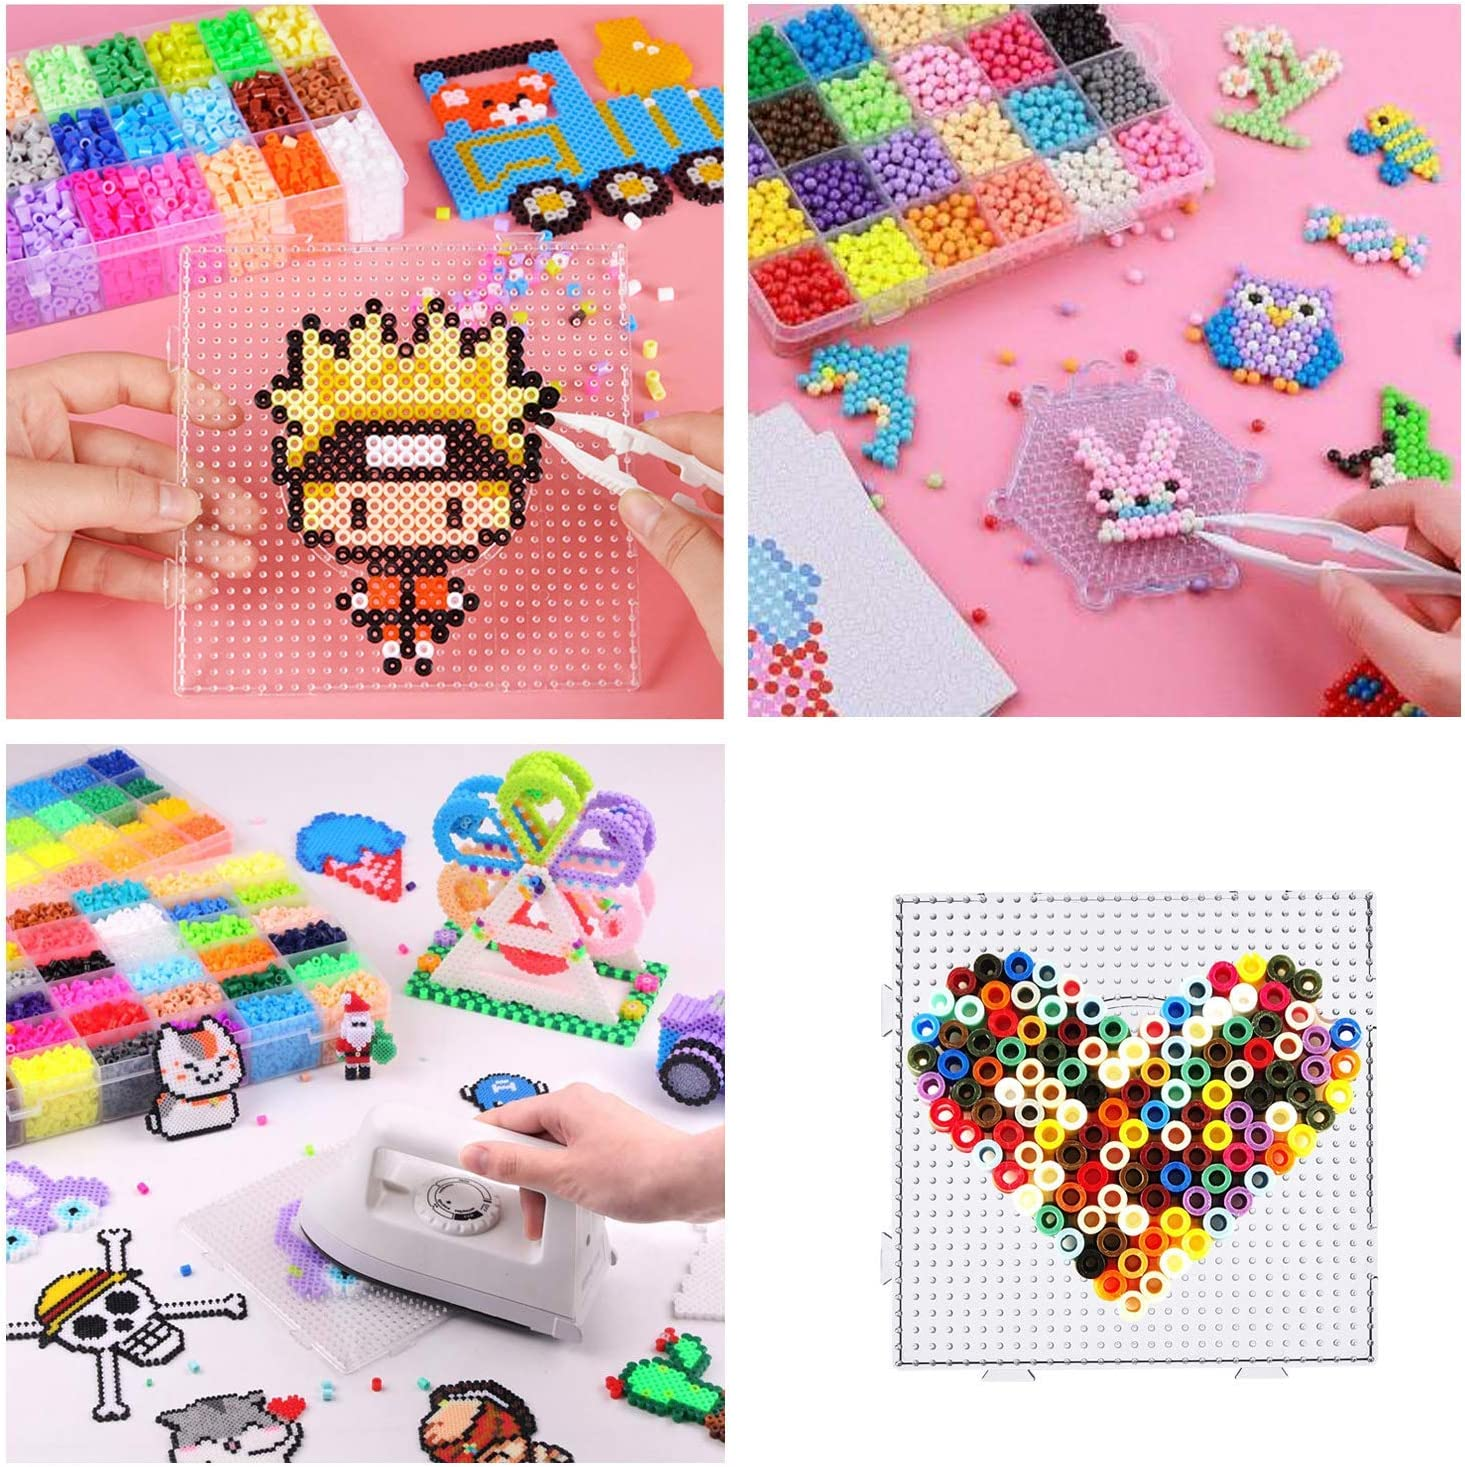 Ironing Paper and Keychain for Kids Craft Supplies 5 mm 6 Pack Large Square Clear Plastic Pegboards with Beads Tweezers Seasonsky 52 PCS Fuse Beads Boards Set